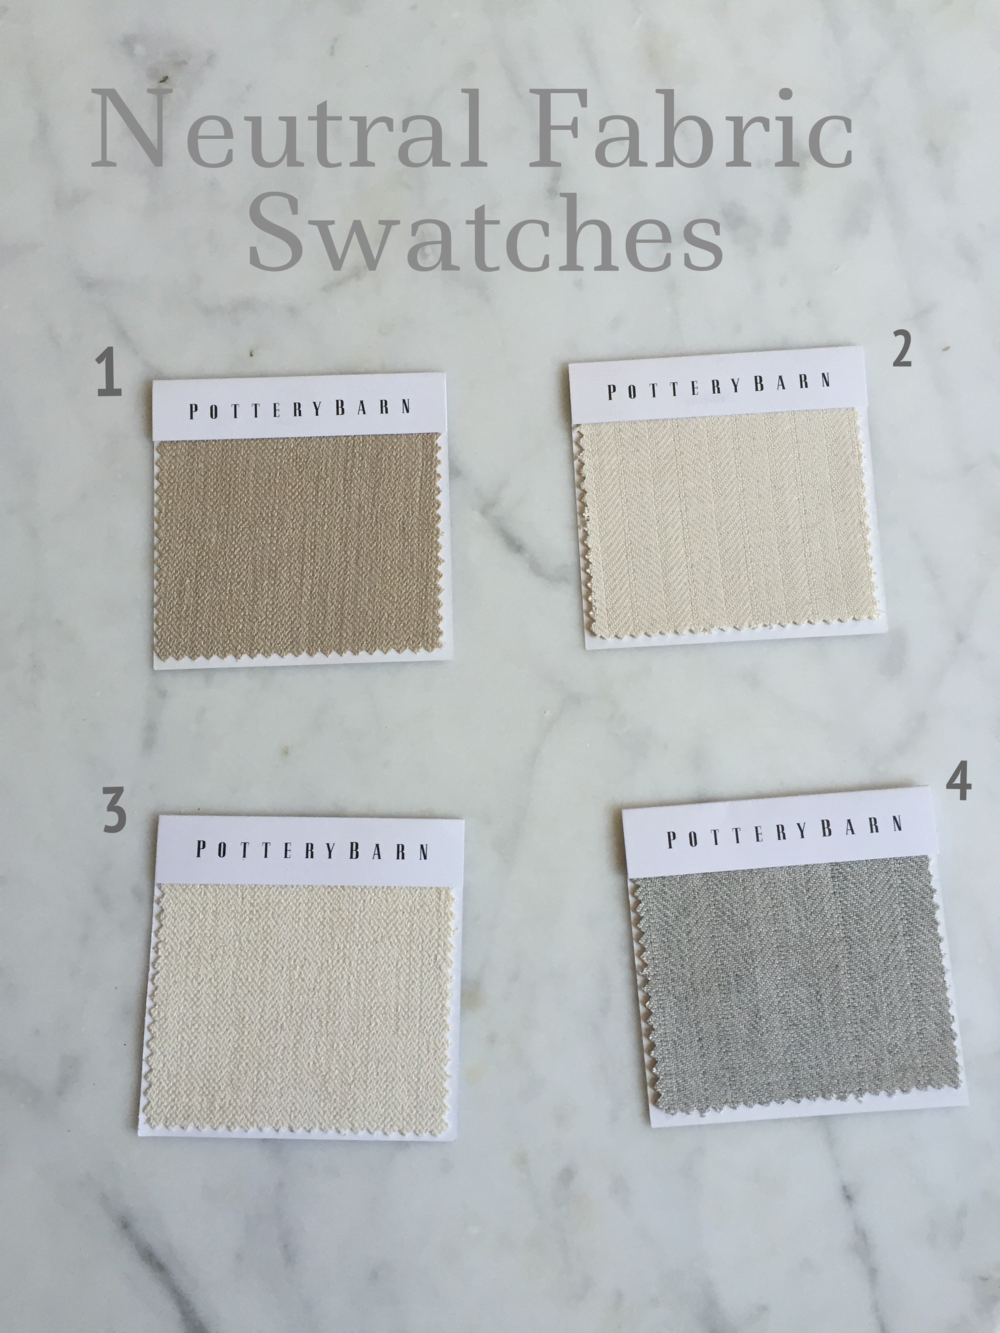 1.  Sunbrella Performance Sahara Weave in Oatmeal (a lot lighter than shown in the picture) 2.  Sunbrella Performance Boss Tweed in Ecru 3.  Sunbrella Performance Sahara Weave in Ivory 4.  Sunbrella Performance Boss Tweed in Pebble